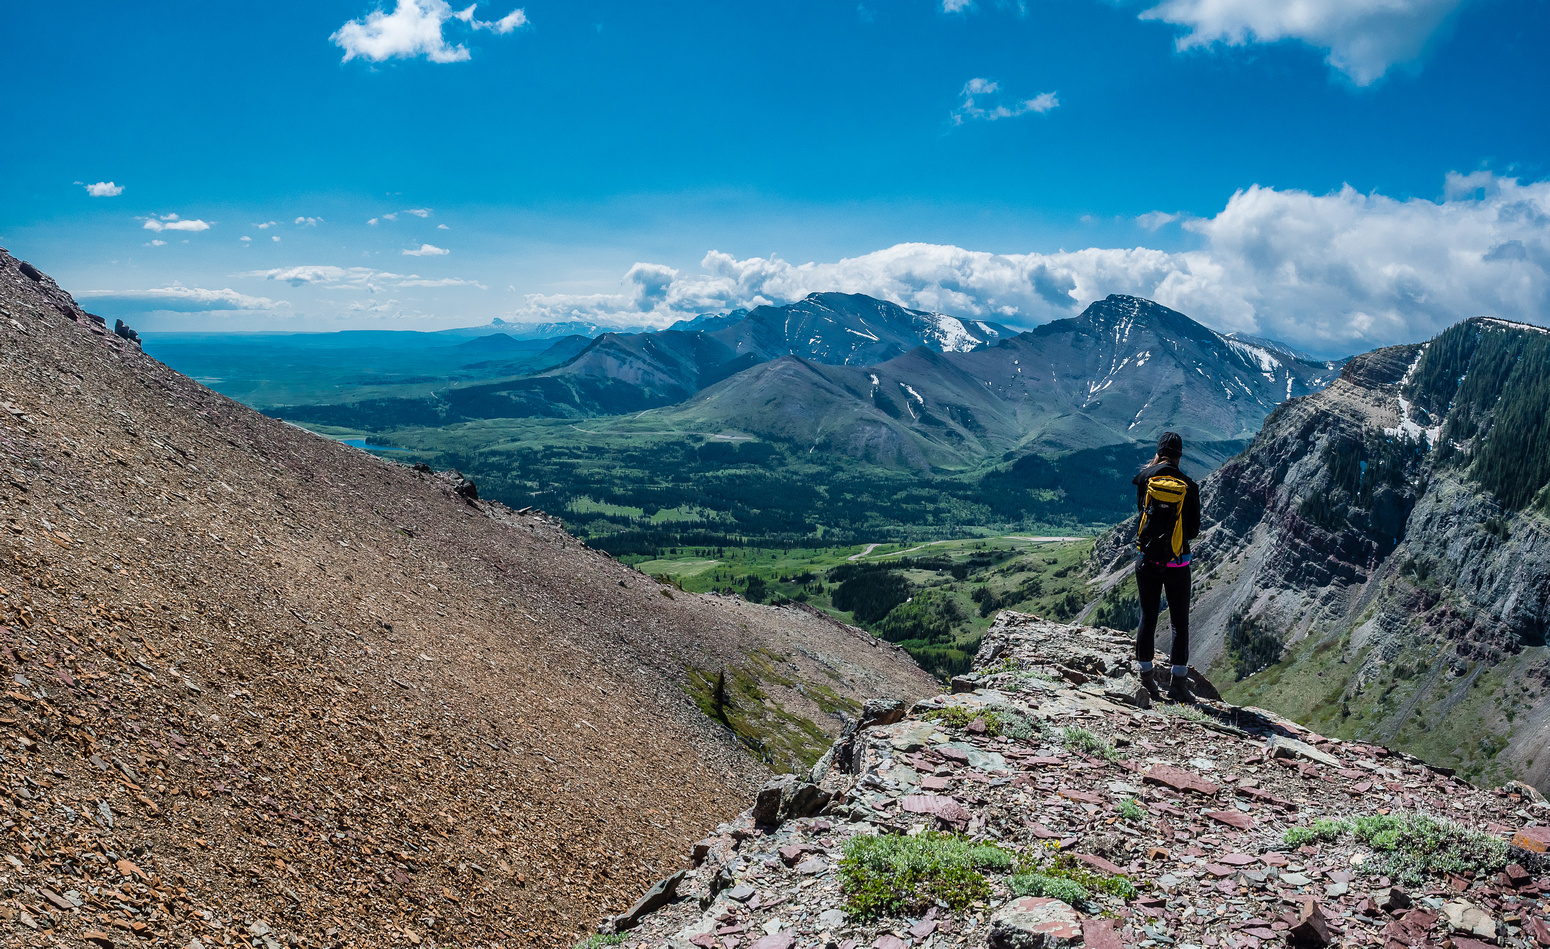 Kaycie enjoys the views towards Pincher Ridge (c) with Drywood Mountain at left. Chief Mountain in Montana is barely visible in the far distance at left.